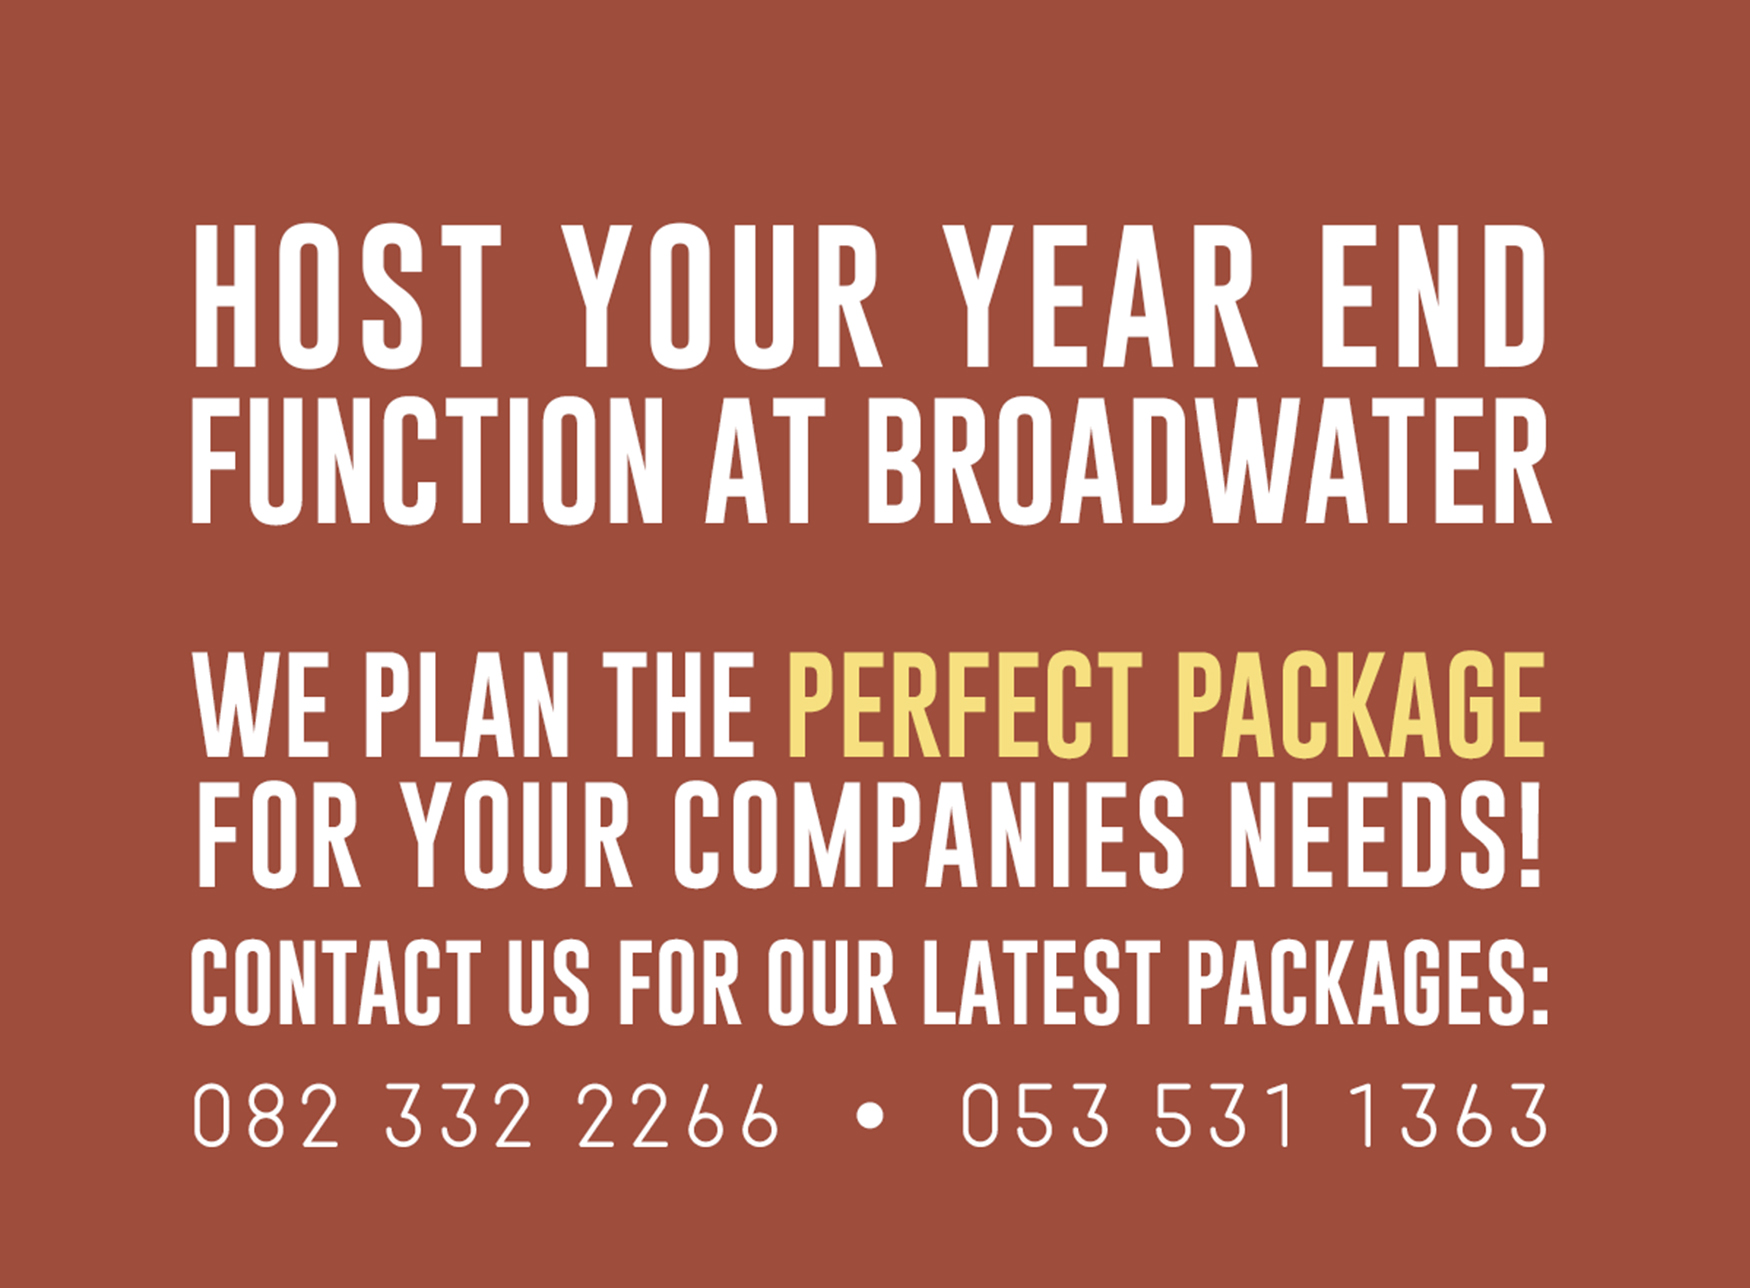 host your year end function at broadwater, we plan the perfect package